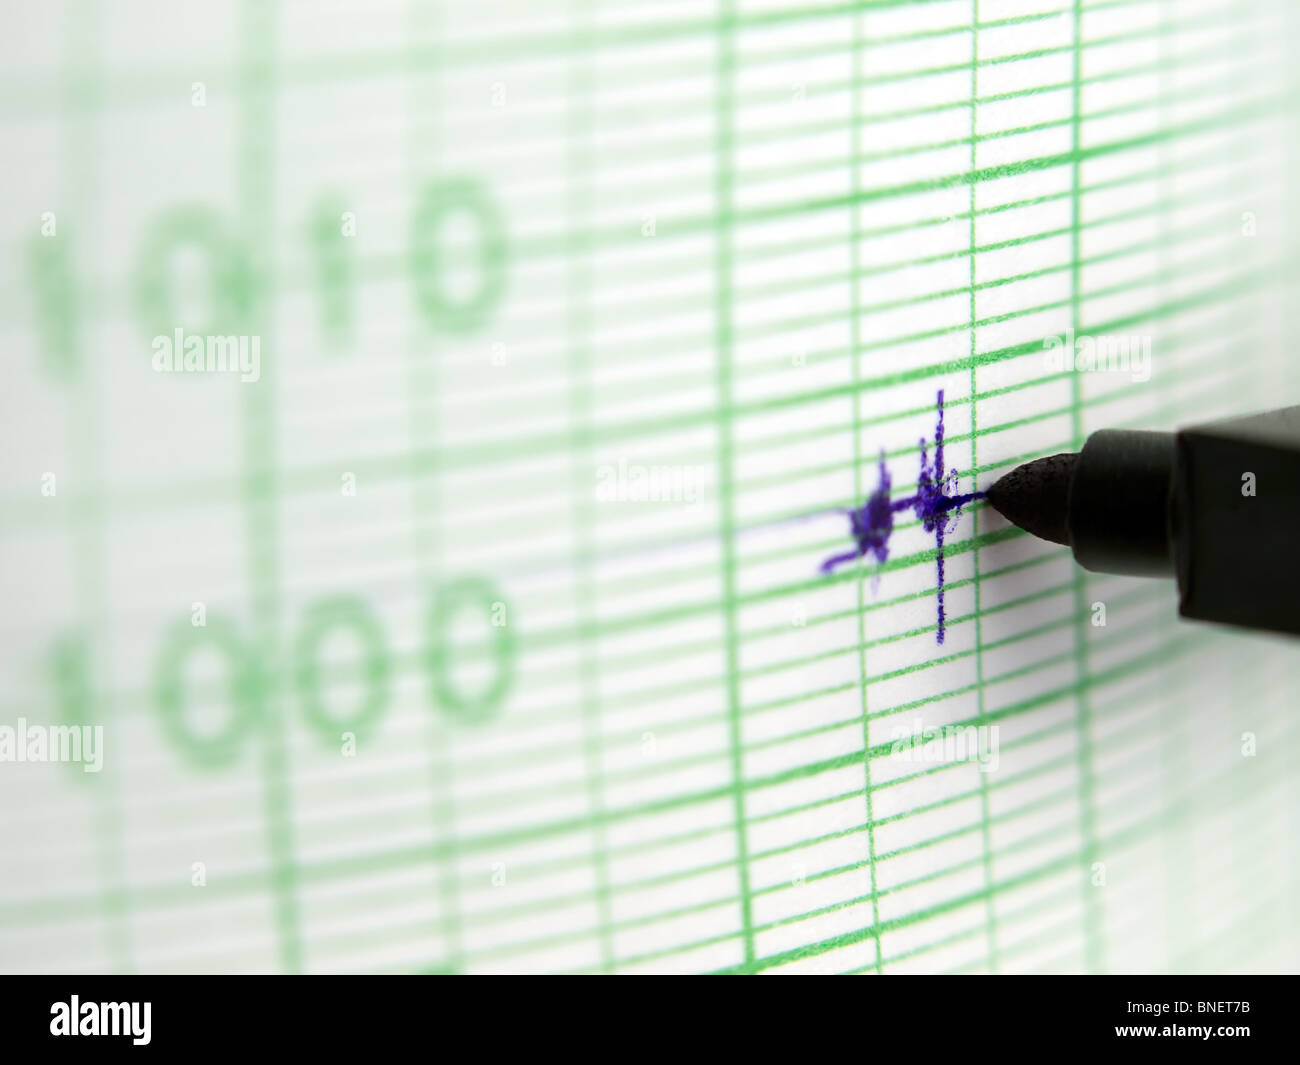 macro shot of a needle drawing the blue line ,showing weak erratic signal on the graph paper ,shallow DOF - Stock Image